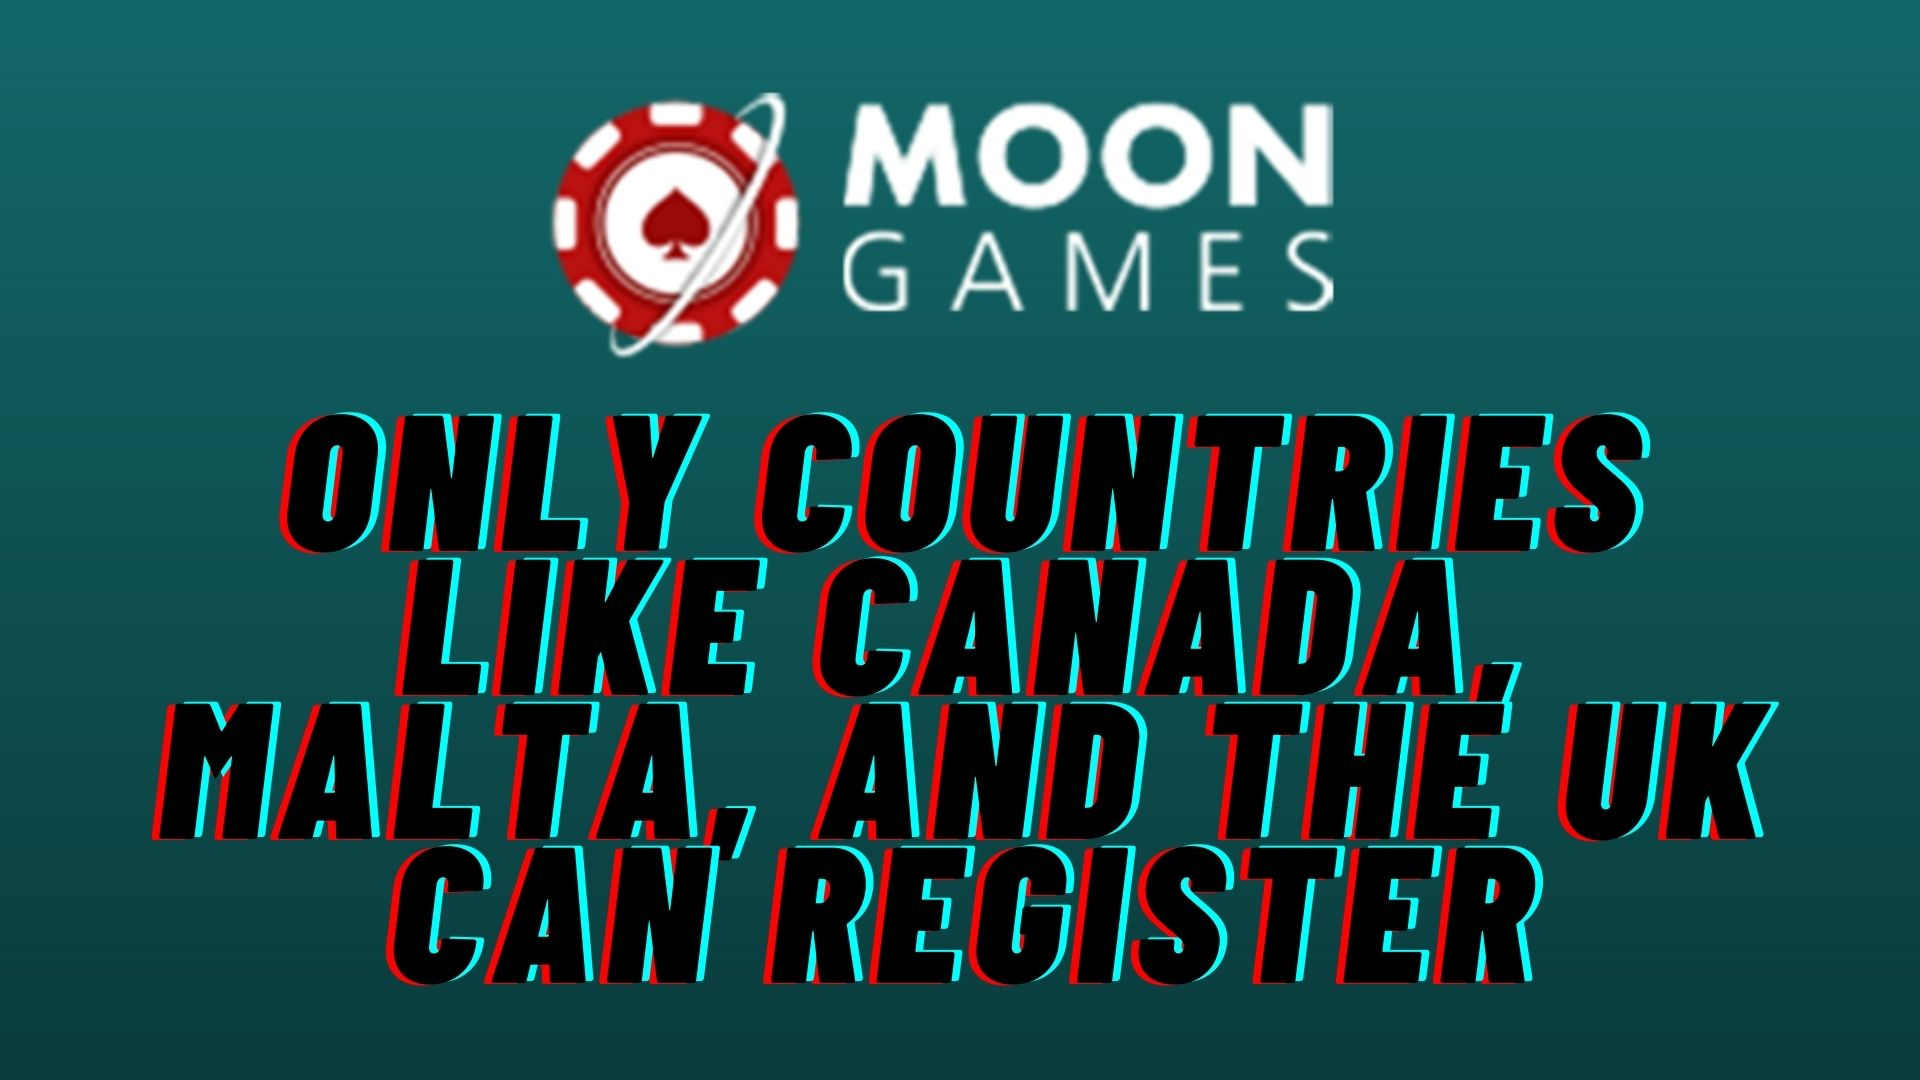 Moon Games Casino Countries